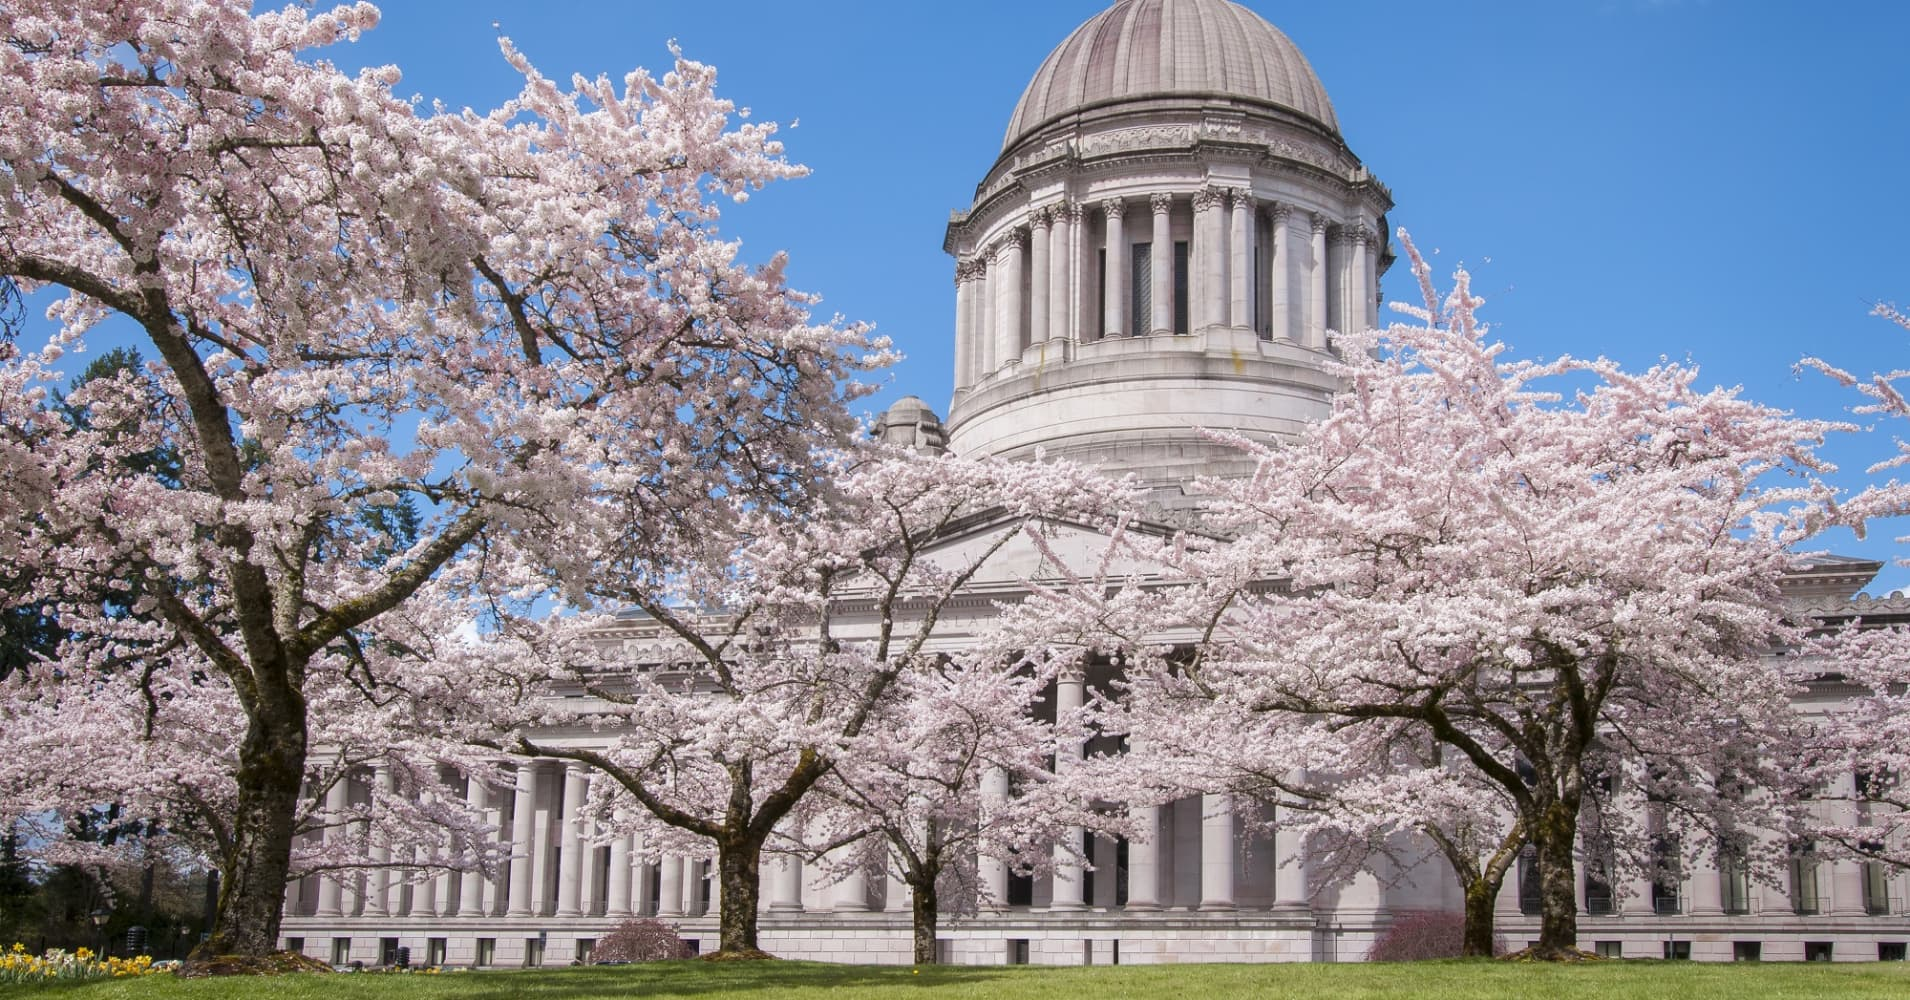 Washington State Capitol Legislative Building and blooming cherry trees in Olympia, Washington.